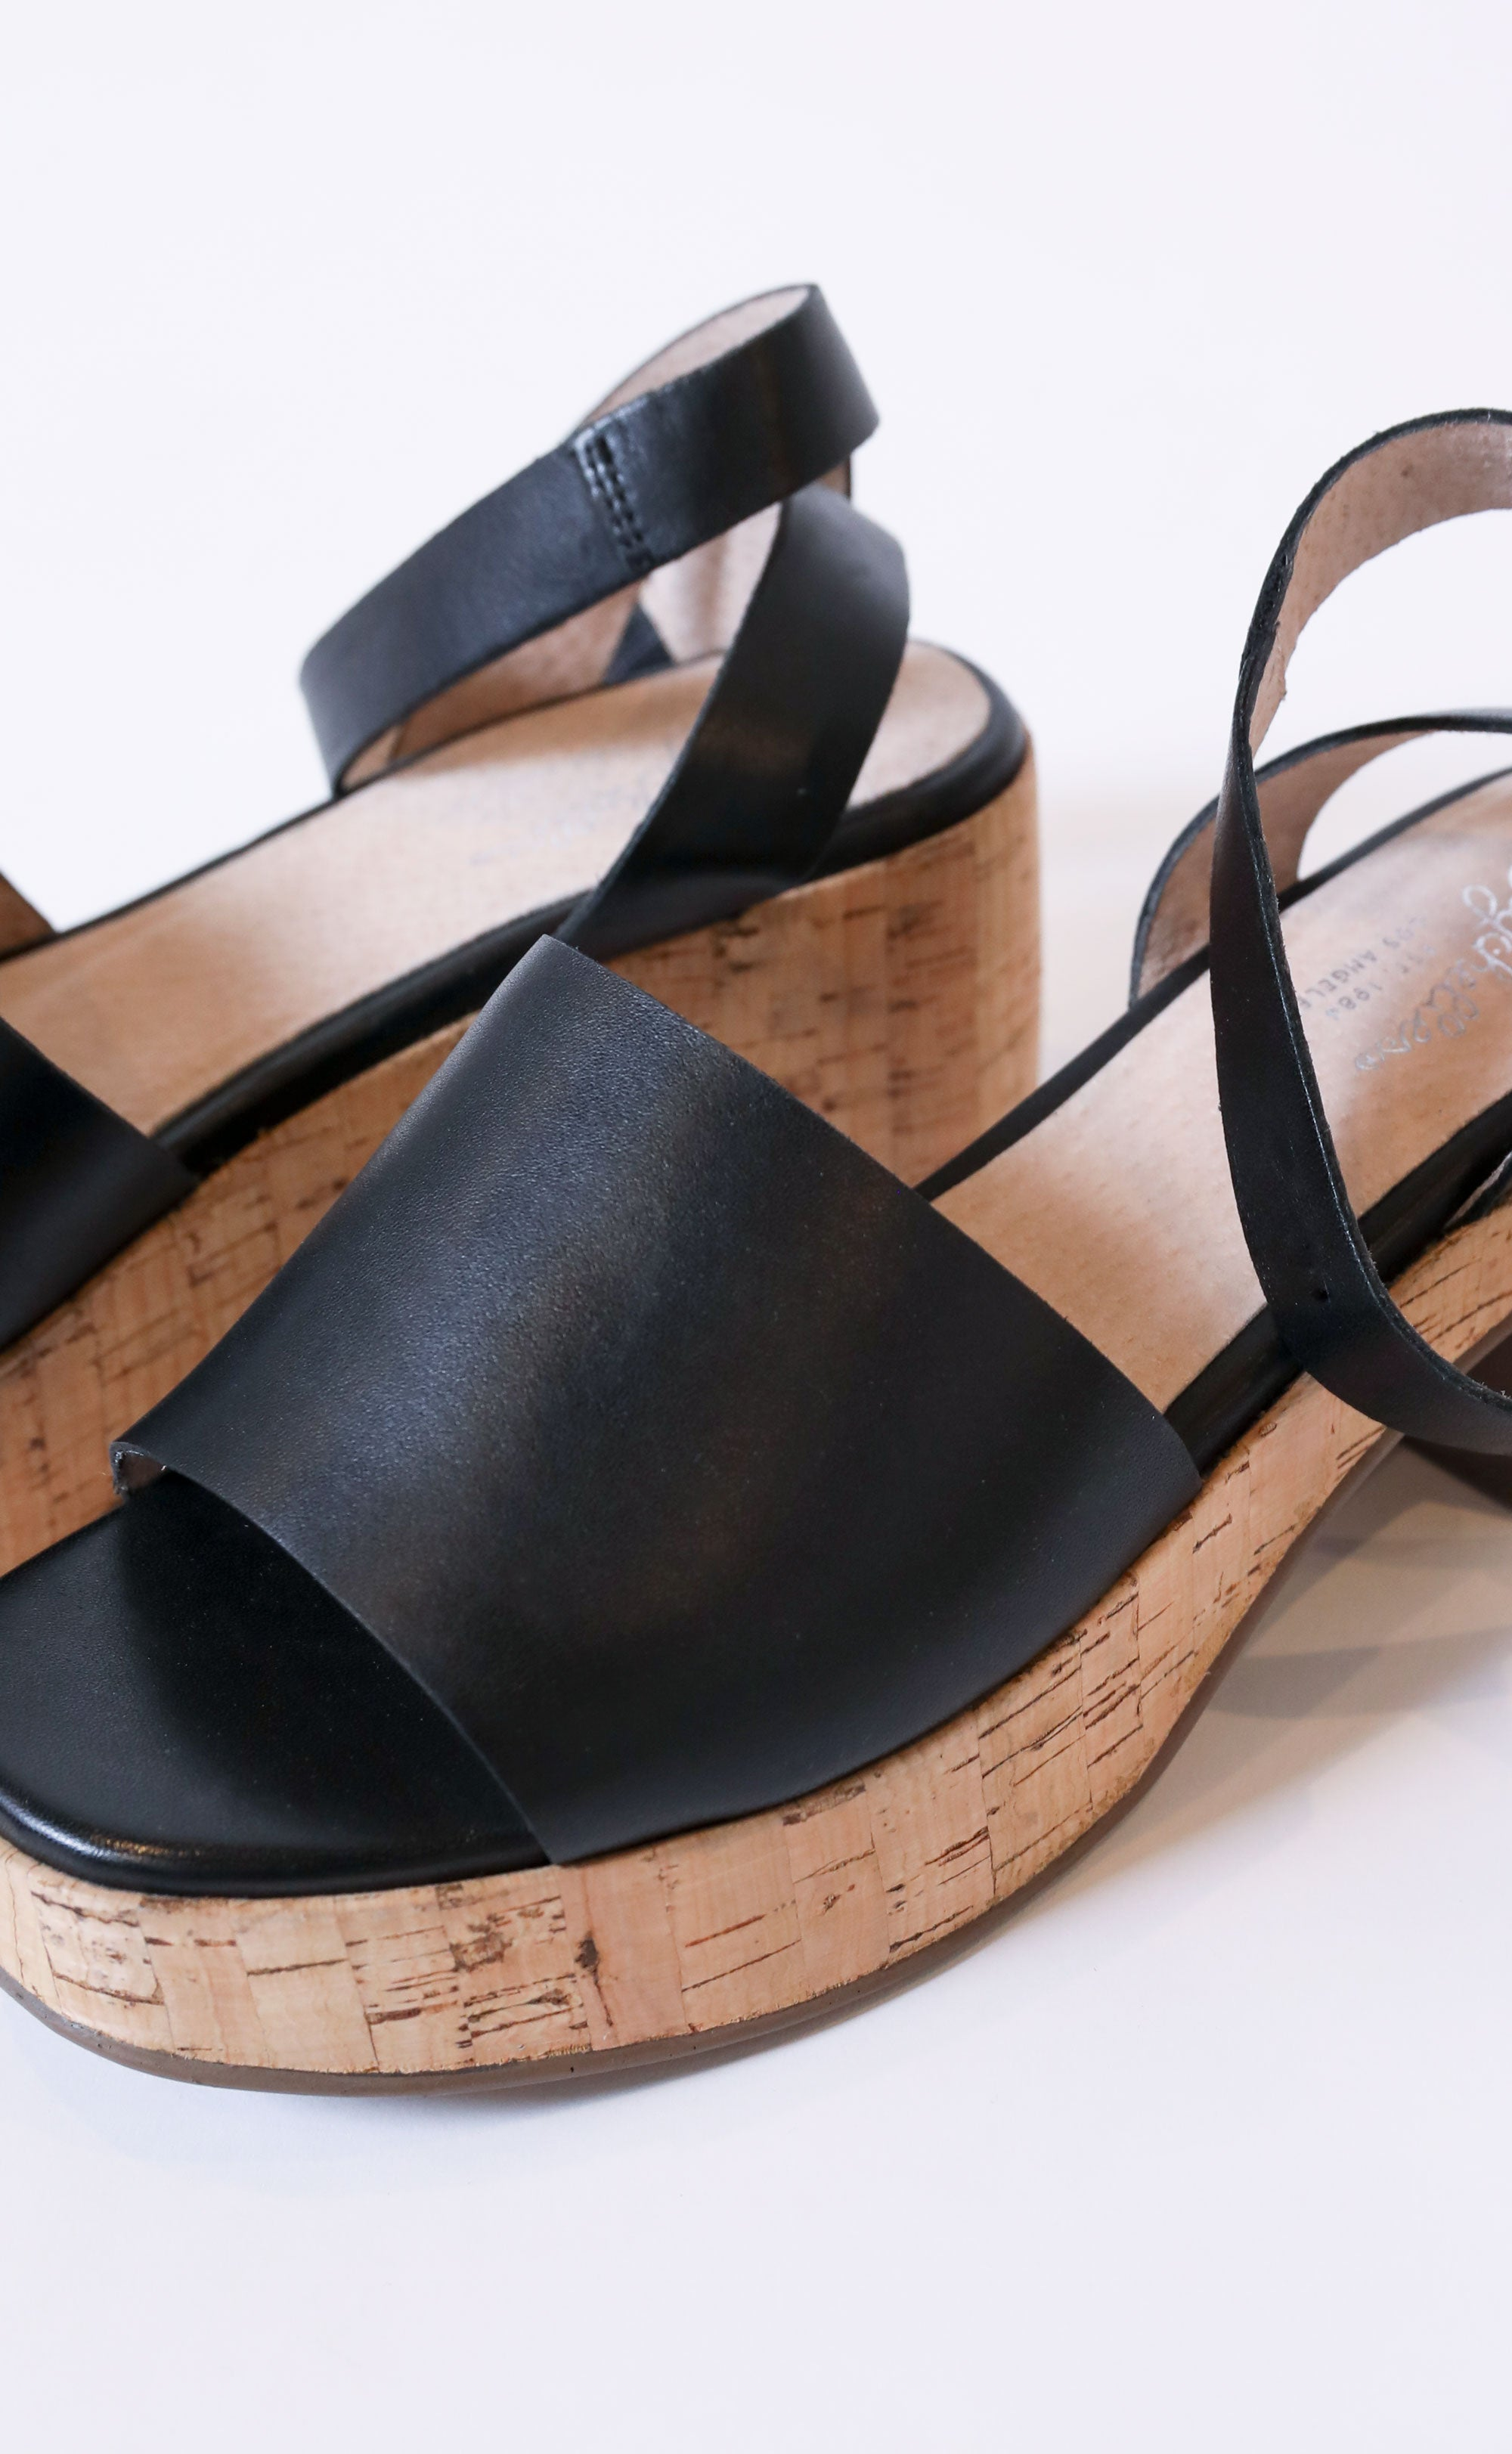 5a0d412f23e seychelles  calming influence platform sandals - black tan ...